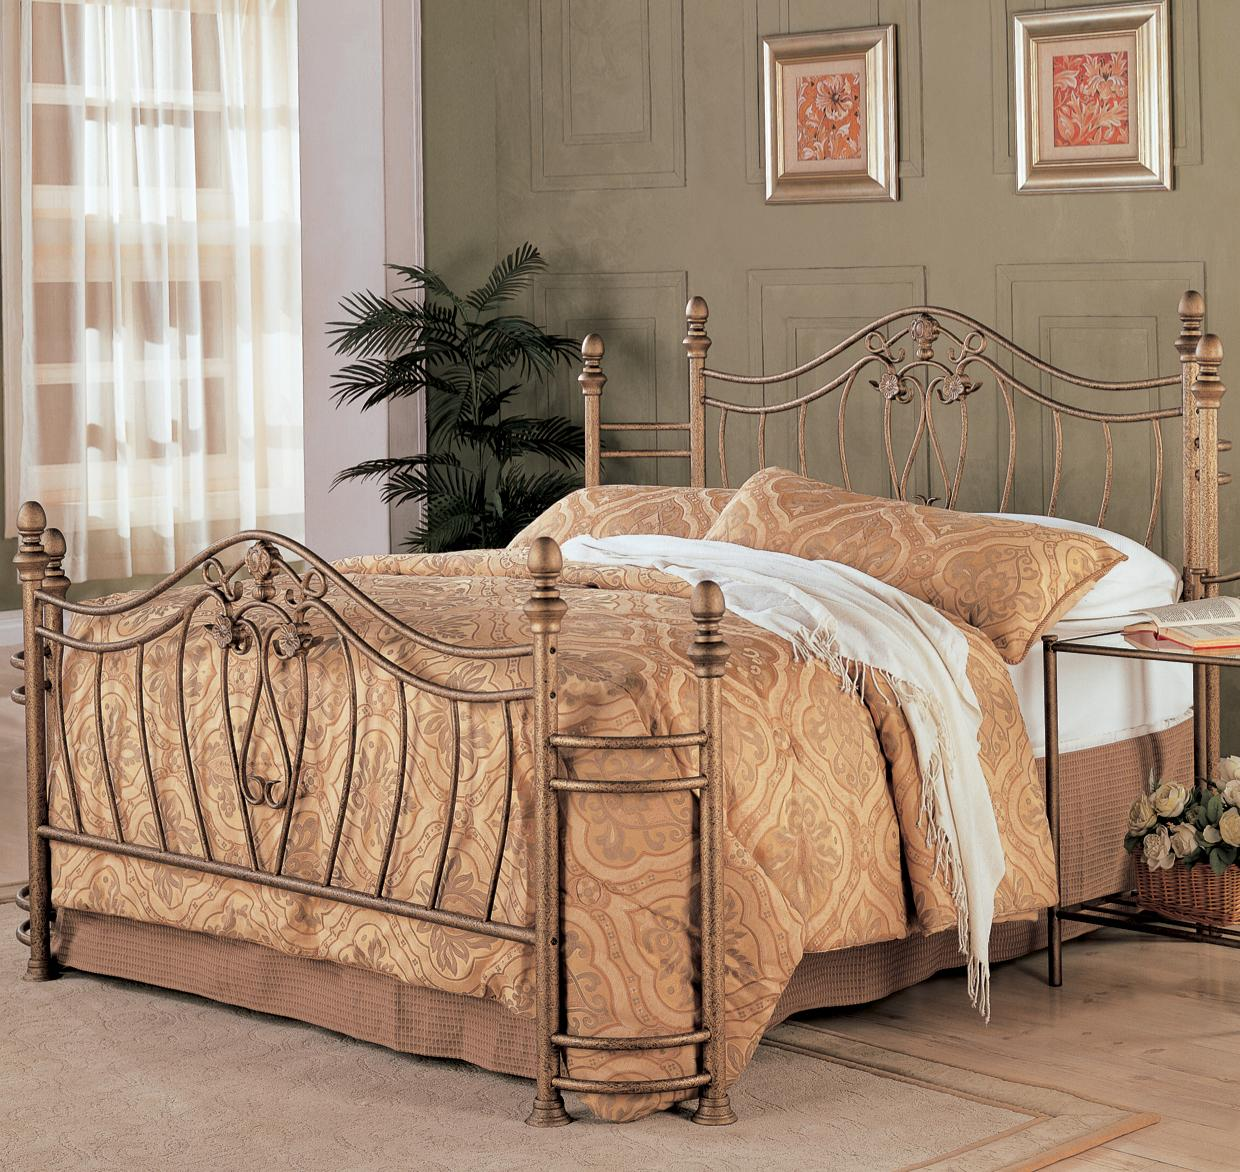 Queen Iron Bed